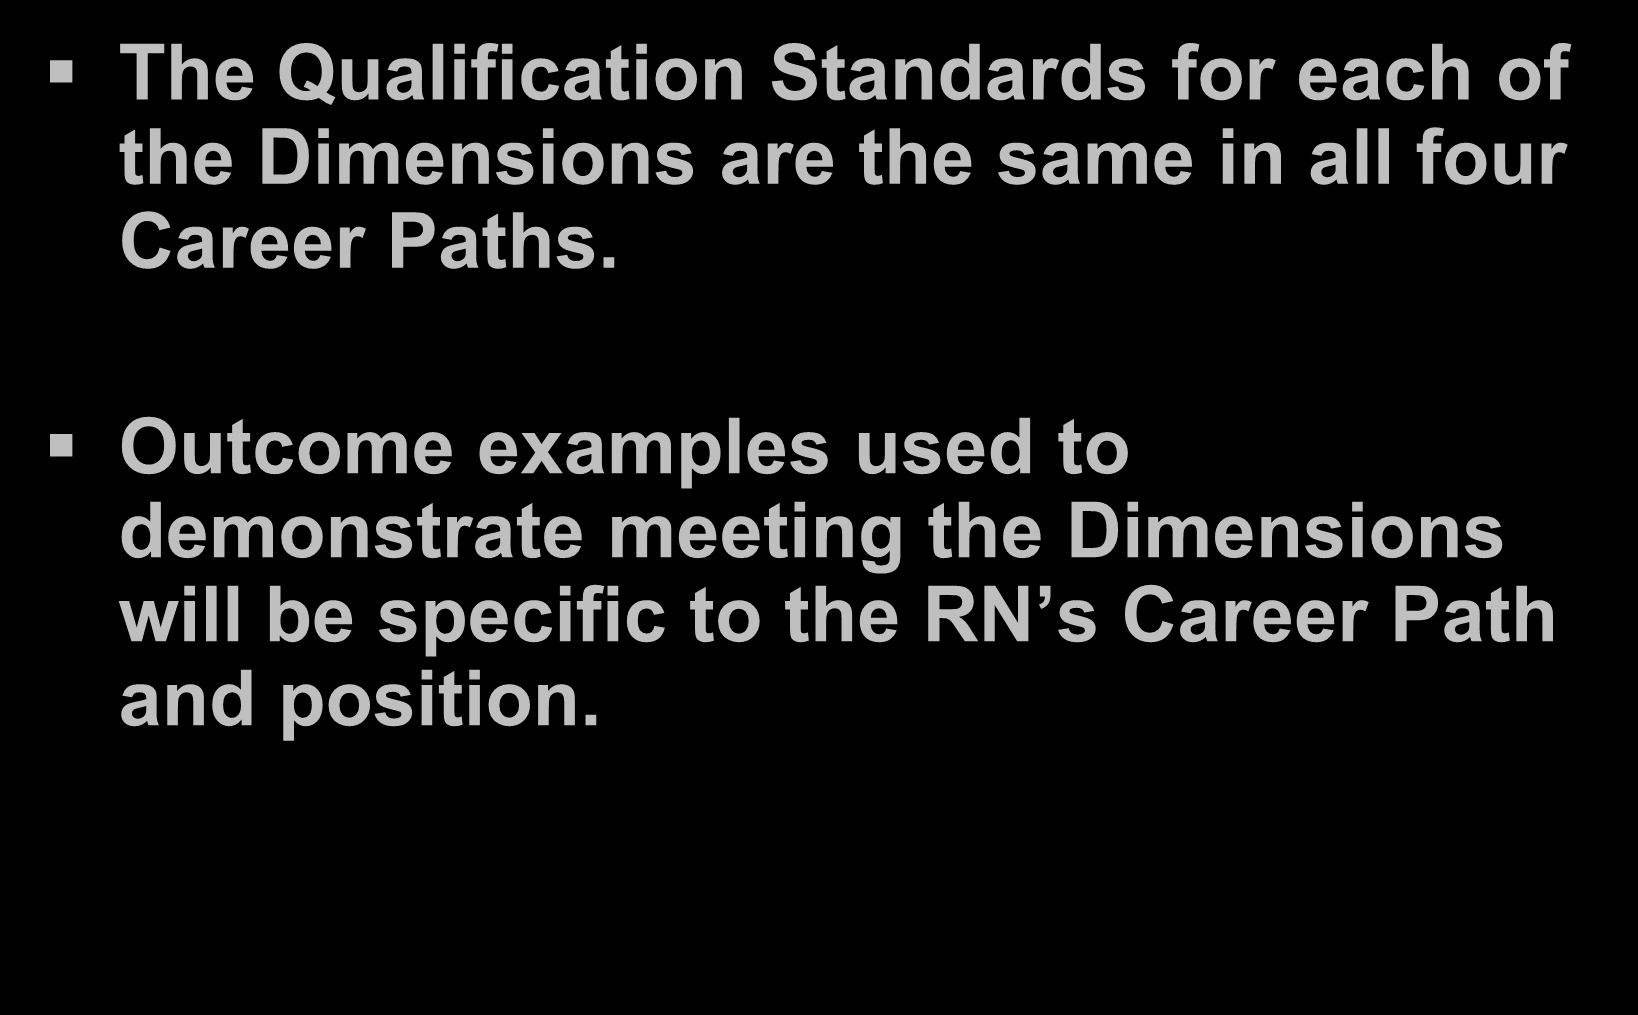 Four Career Paths (Cont.) The Qualification Standards for each of the Dimensions are the same in all four Career Paths.